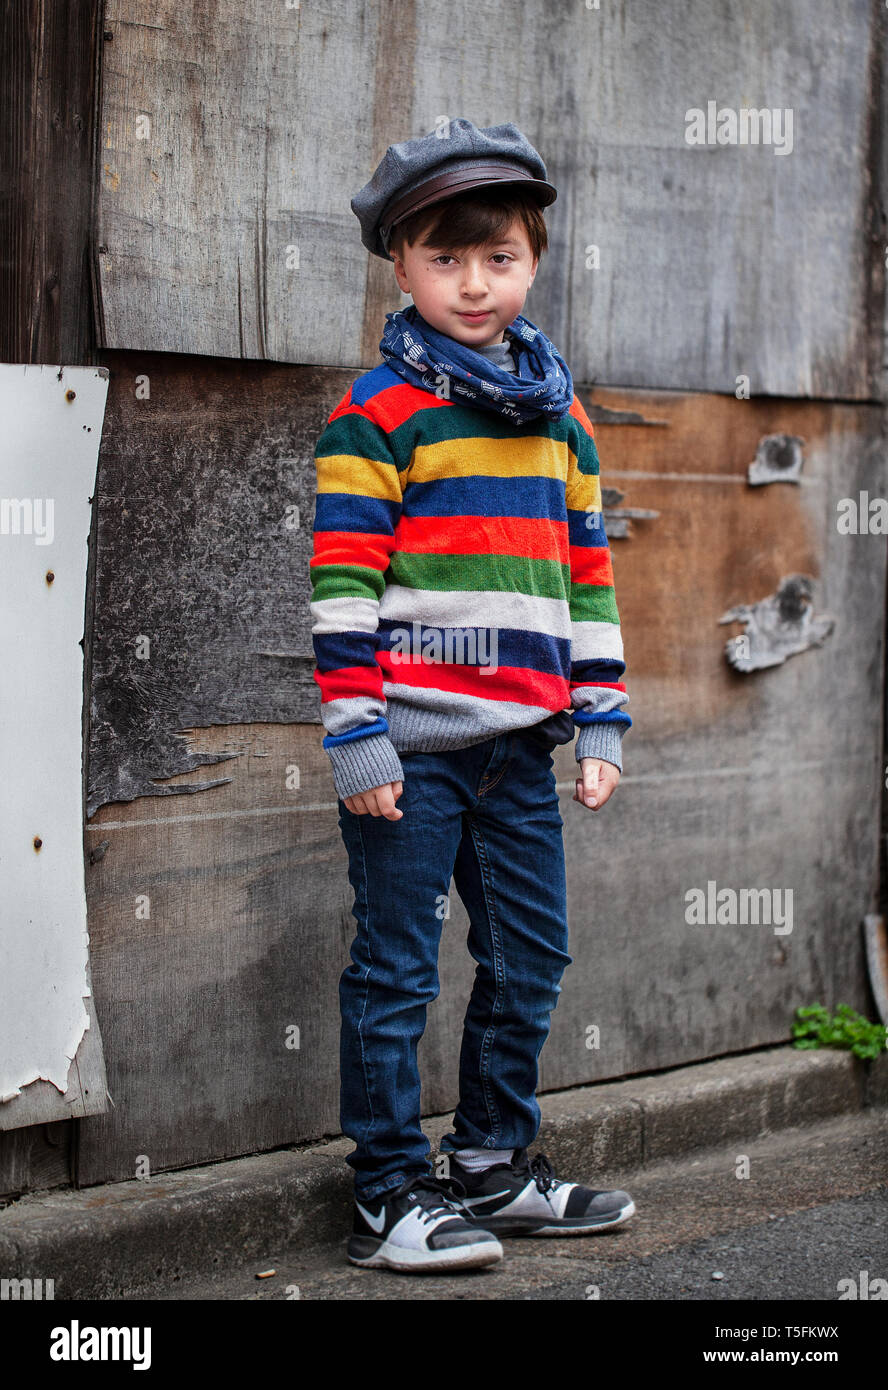 Mixed race Asian Caucasian boy wearing a rainbow striped sweater and gray cap and blue denim jeans in front of a dilapidated wood building Stock Photo